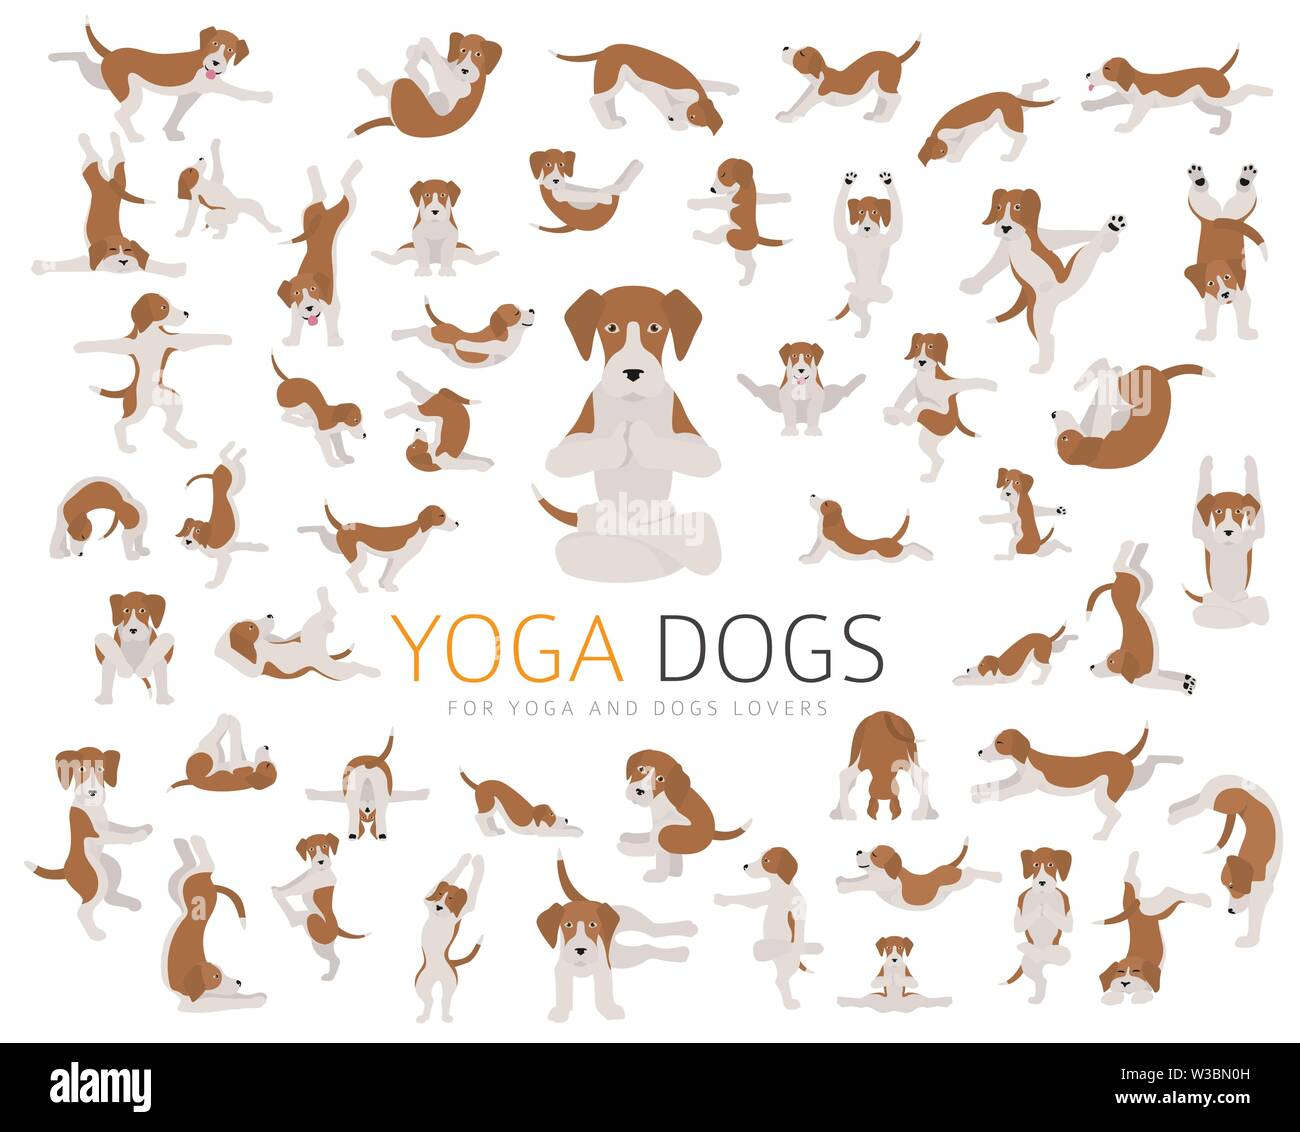 Yoga Dogs Poses And Exercises Doing Clipart Funny Cartoon Poster Design Vector Illustration Stock Vector Image Art Alamy